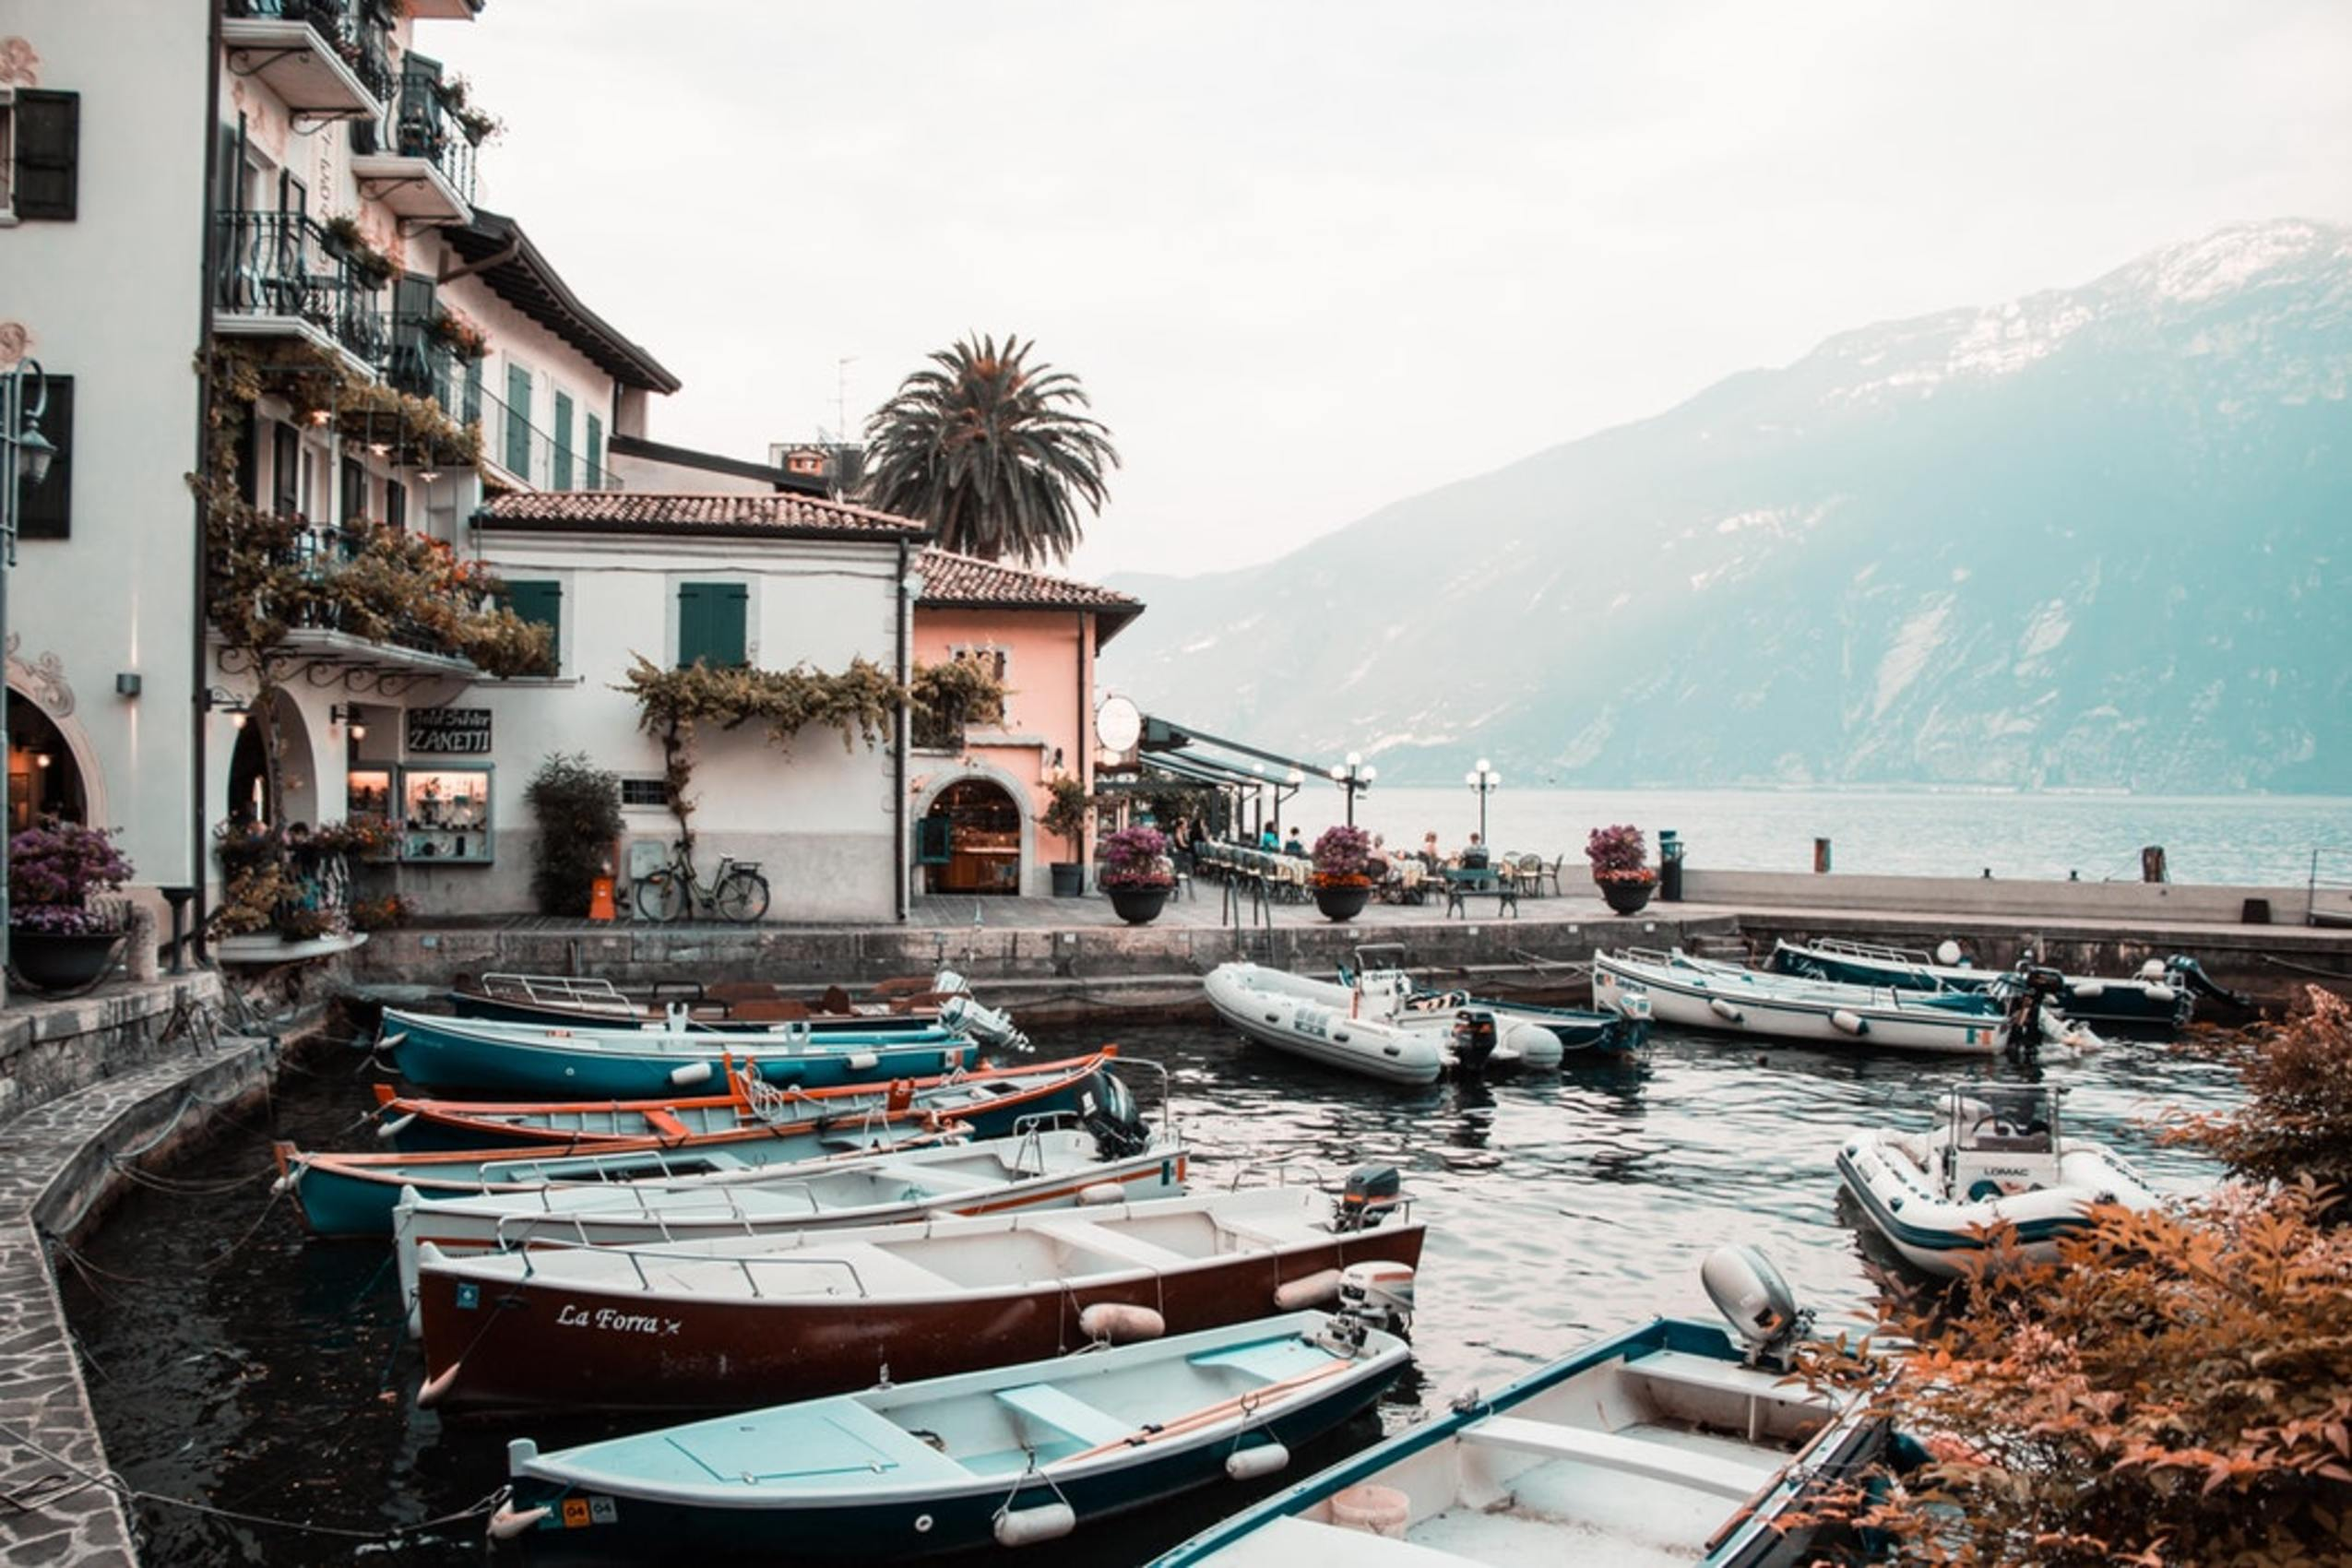 Boats and villas by Lake Garda in Italy